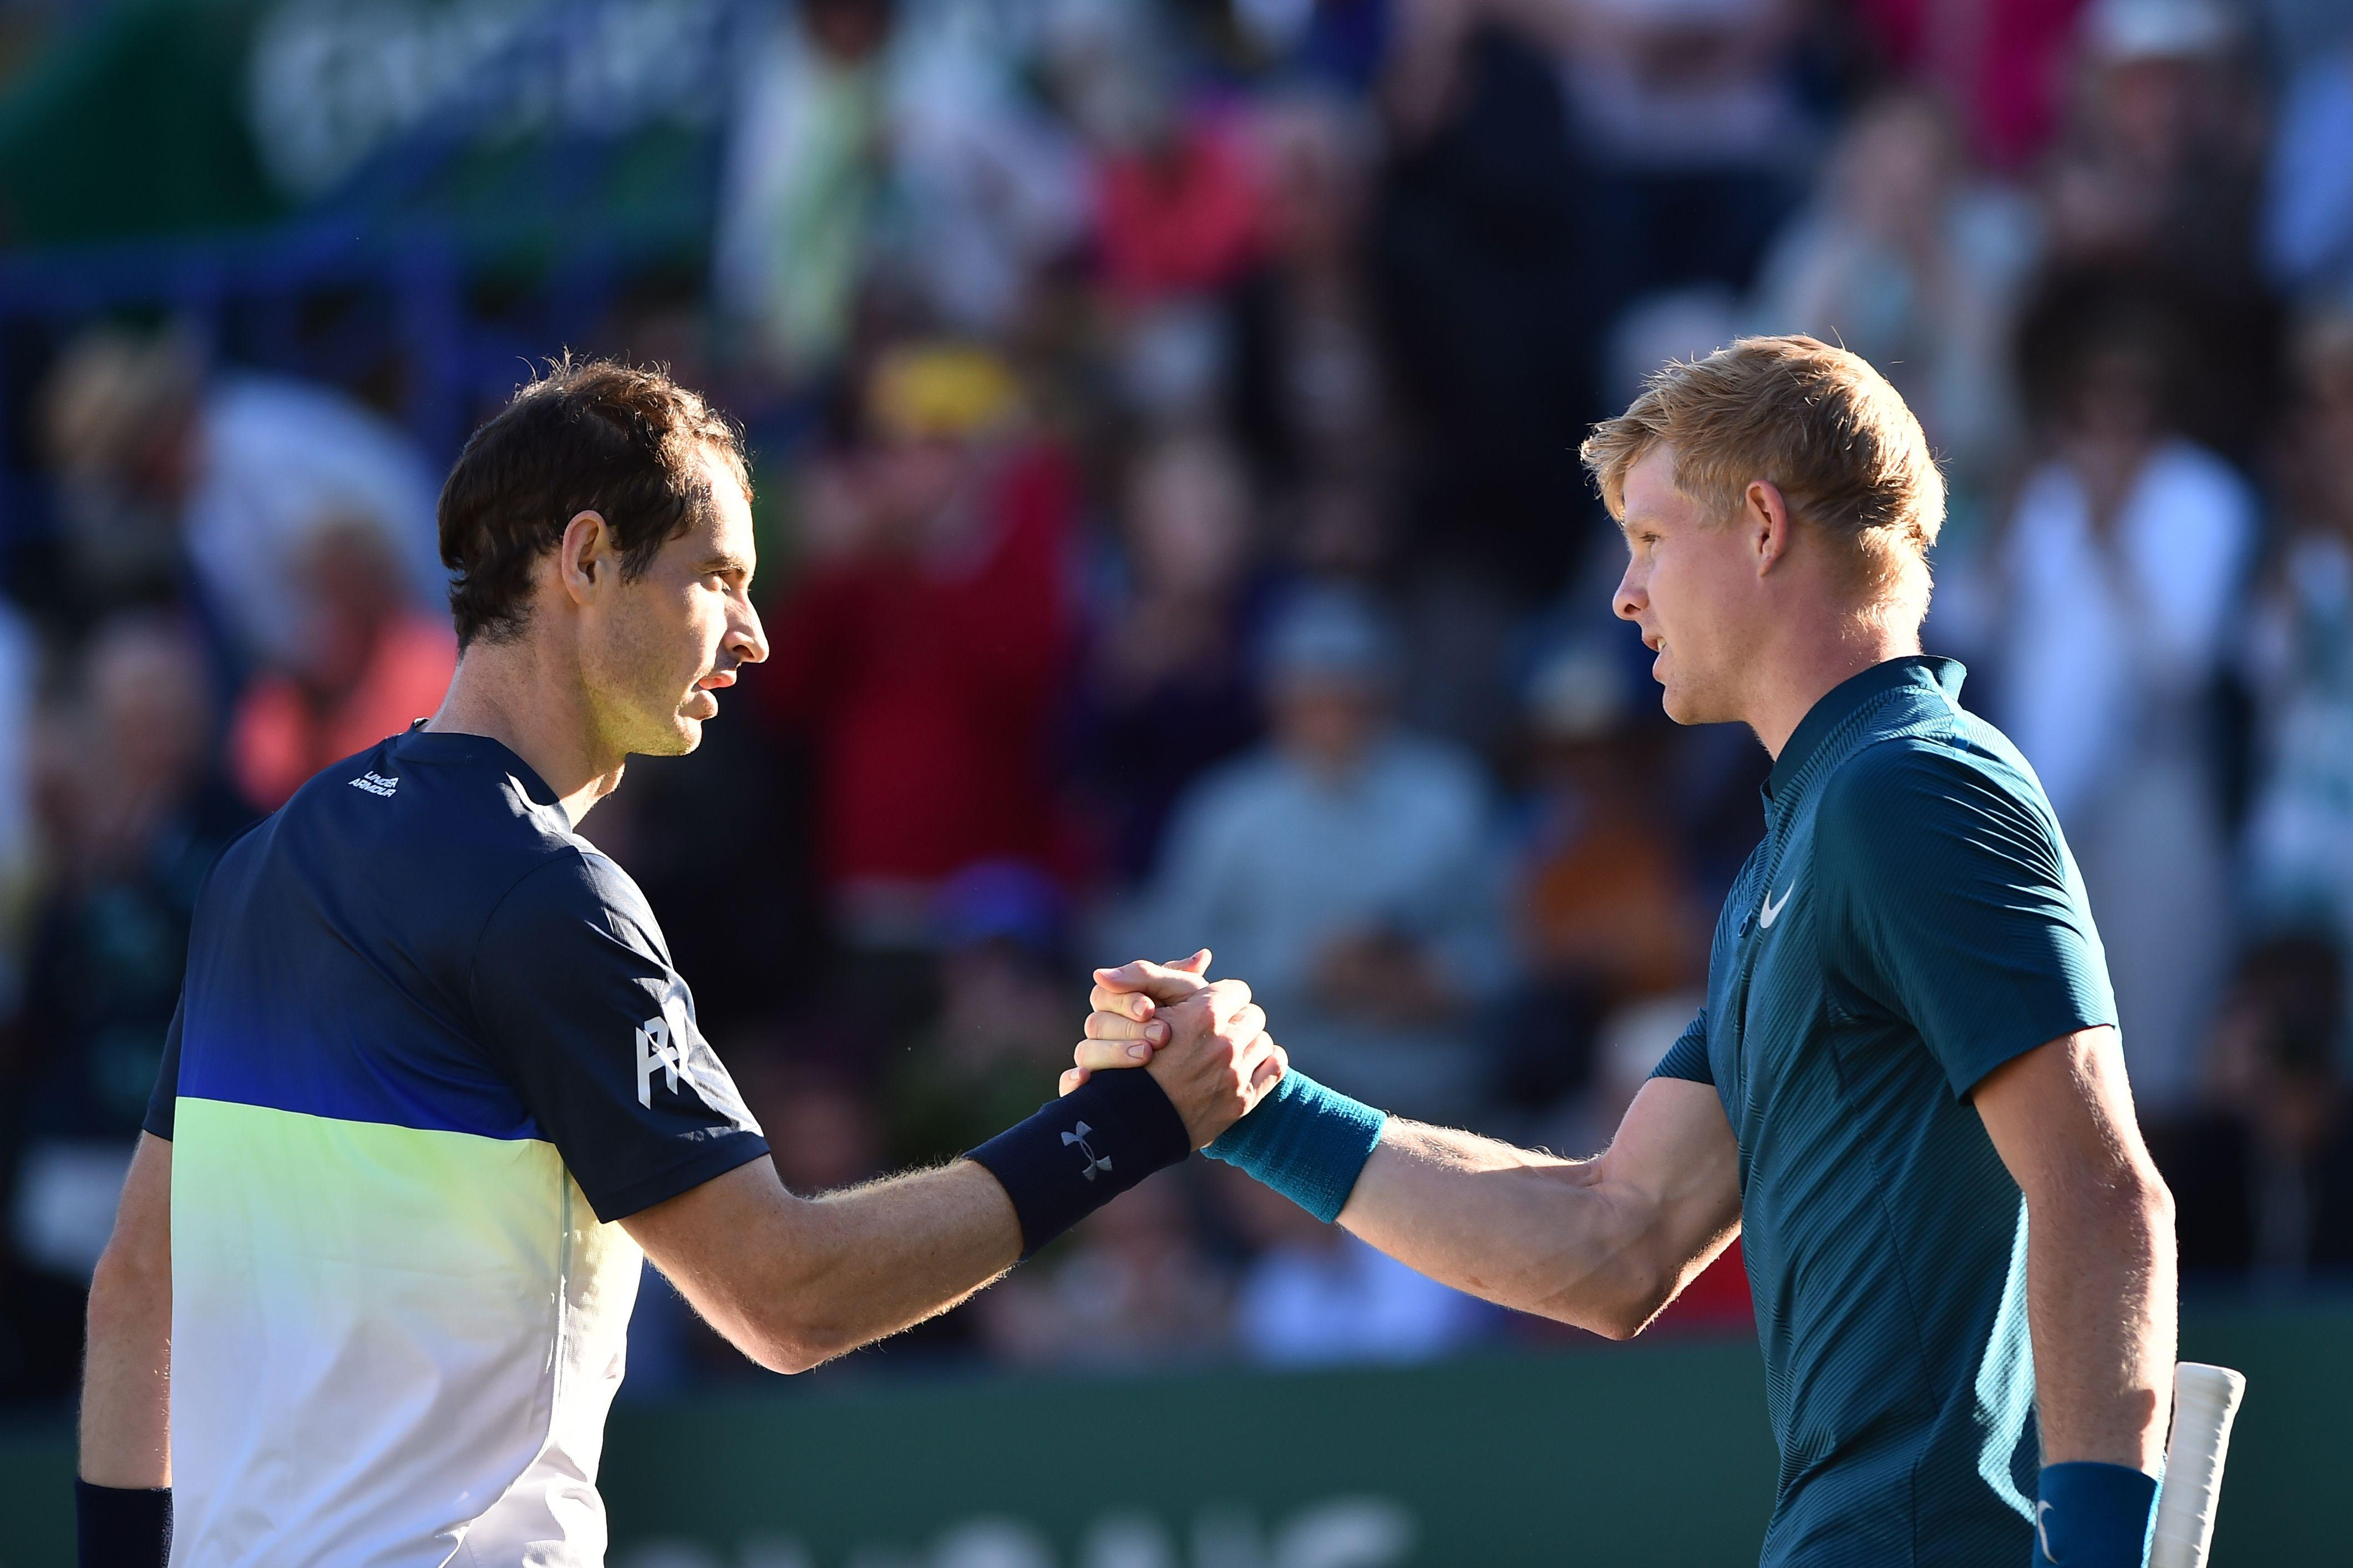 Most recently, Andy Murray lost to Kyle Edmund at Eastbourne